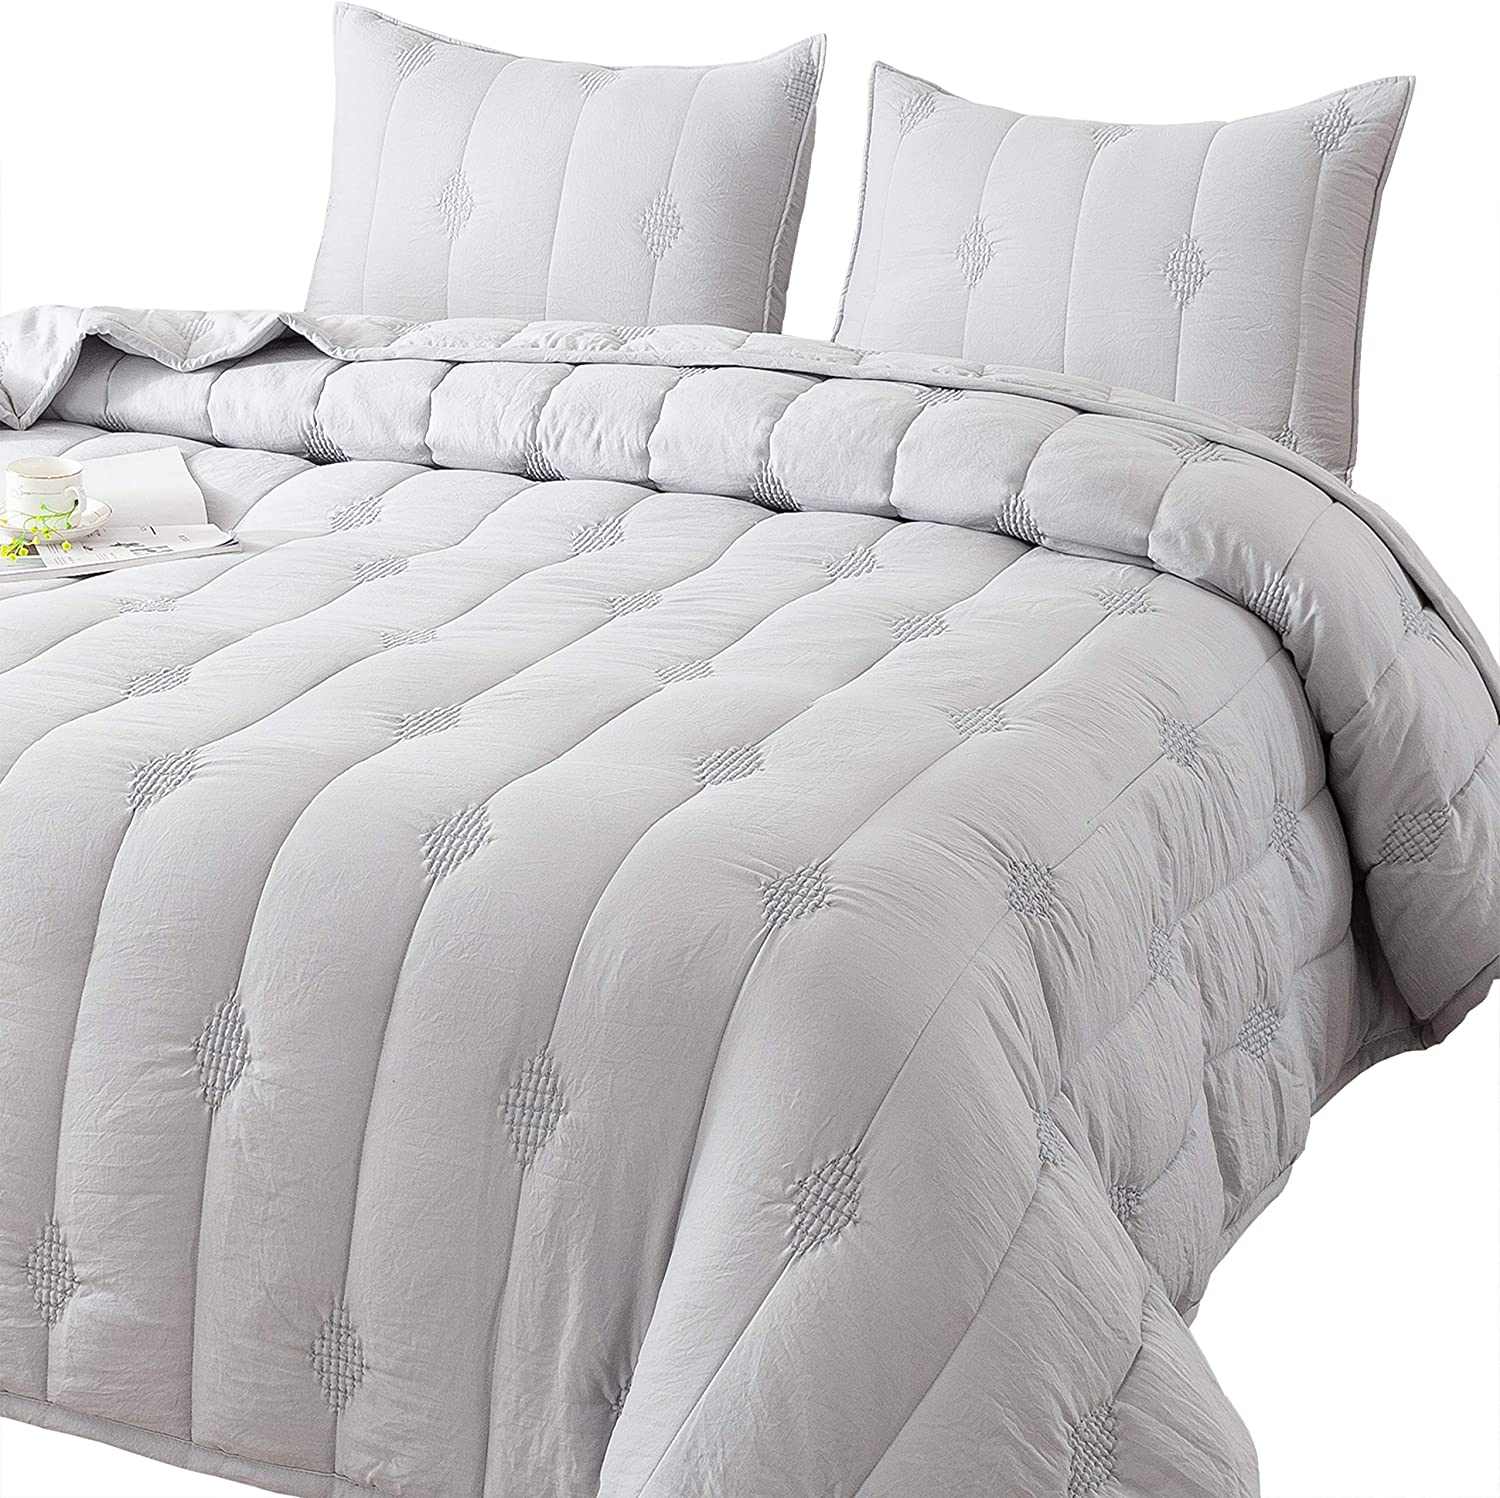 Light Grey, Twin Set Quilt Good for All Seasons. Allover Stitching and Embroidery ANNA.Z HOME Ethan Comforter Stone Washed Microfiber 3-Piece Set Quilt Queen and Twin Set in Solid Colors King